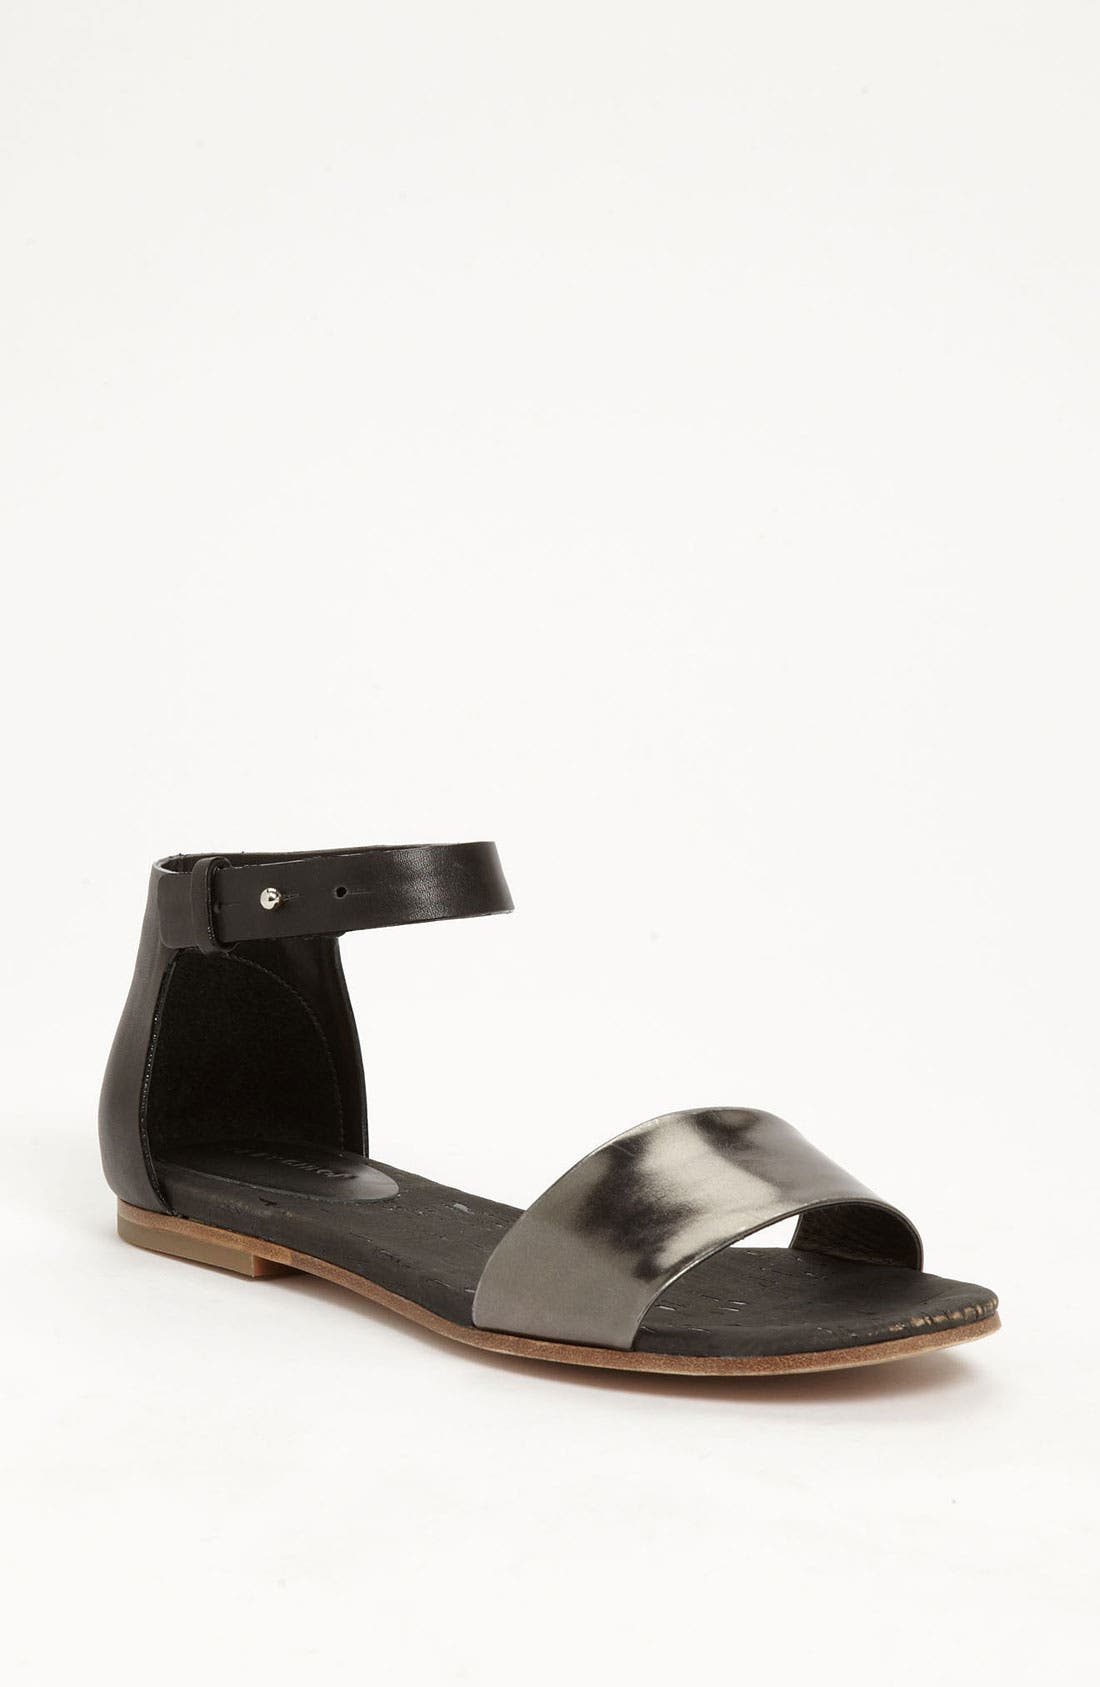 Alternate Image 1 Selected - See by Chloé 'Hera' Sandal